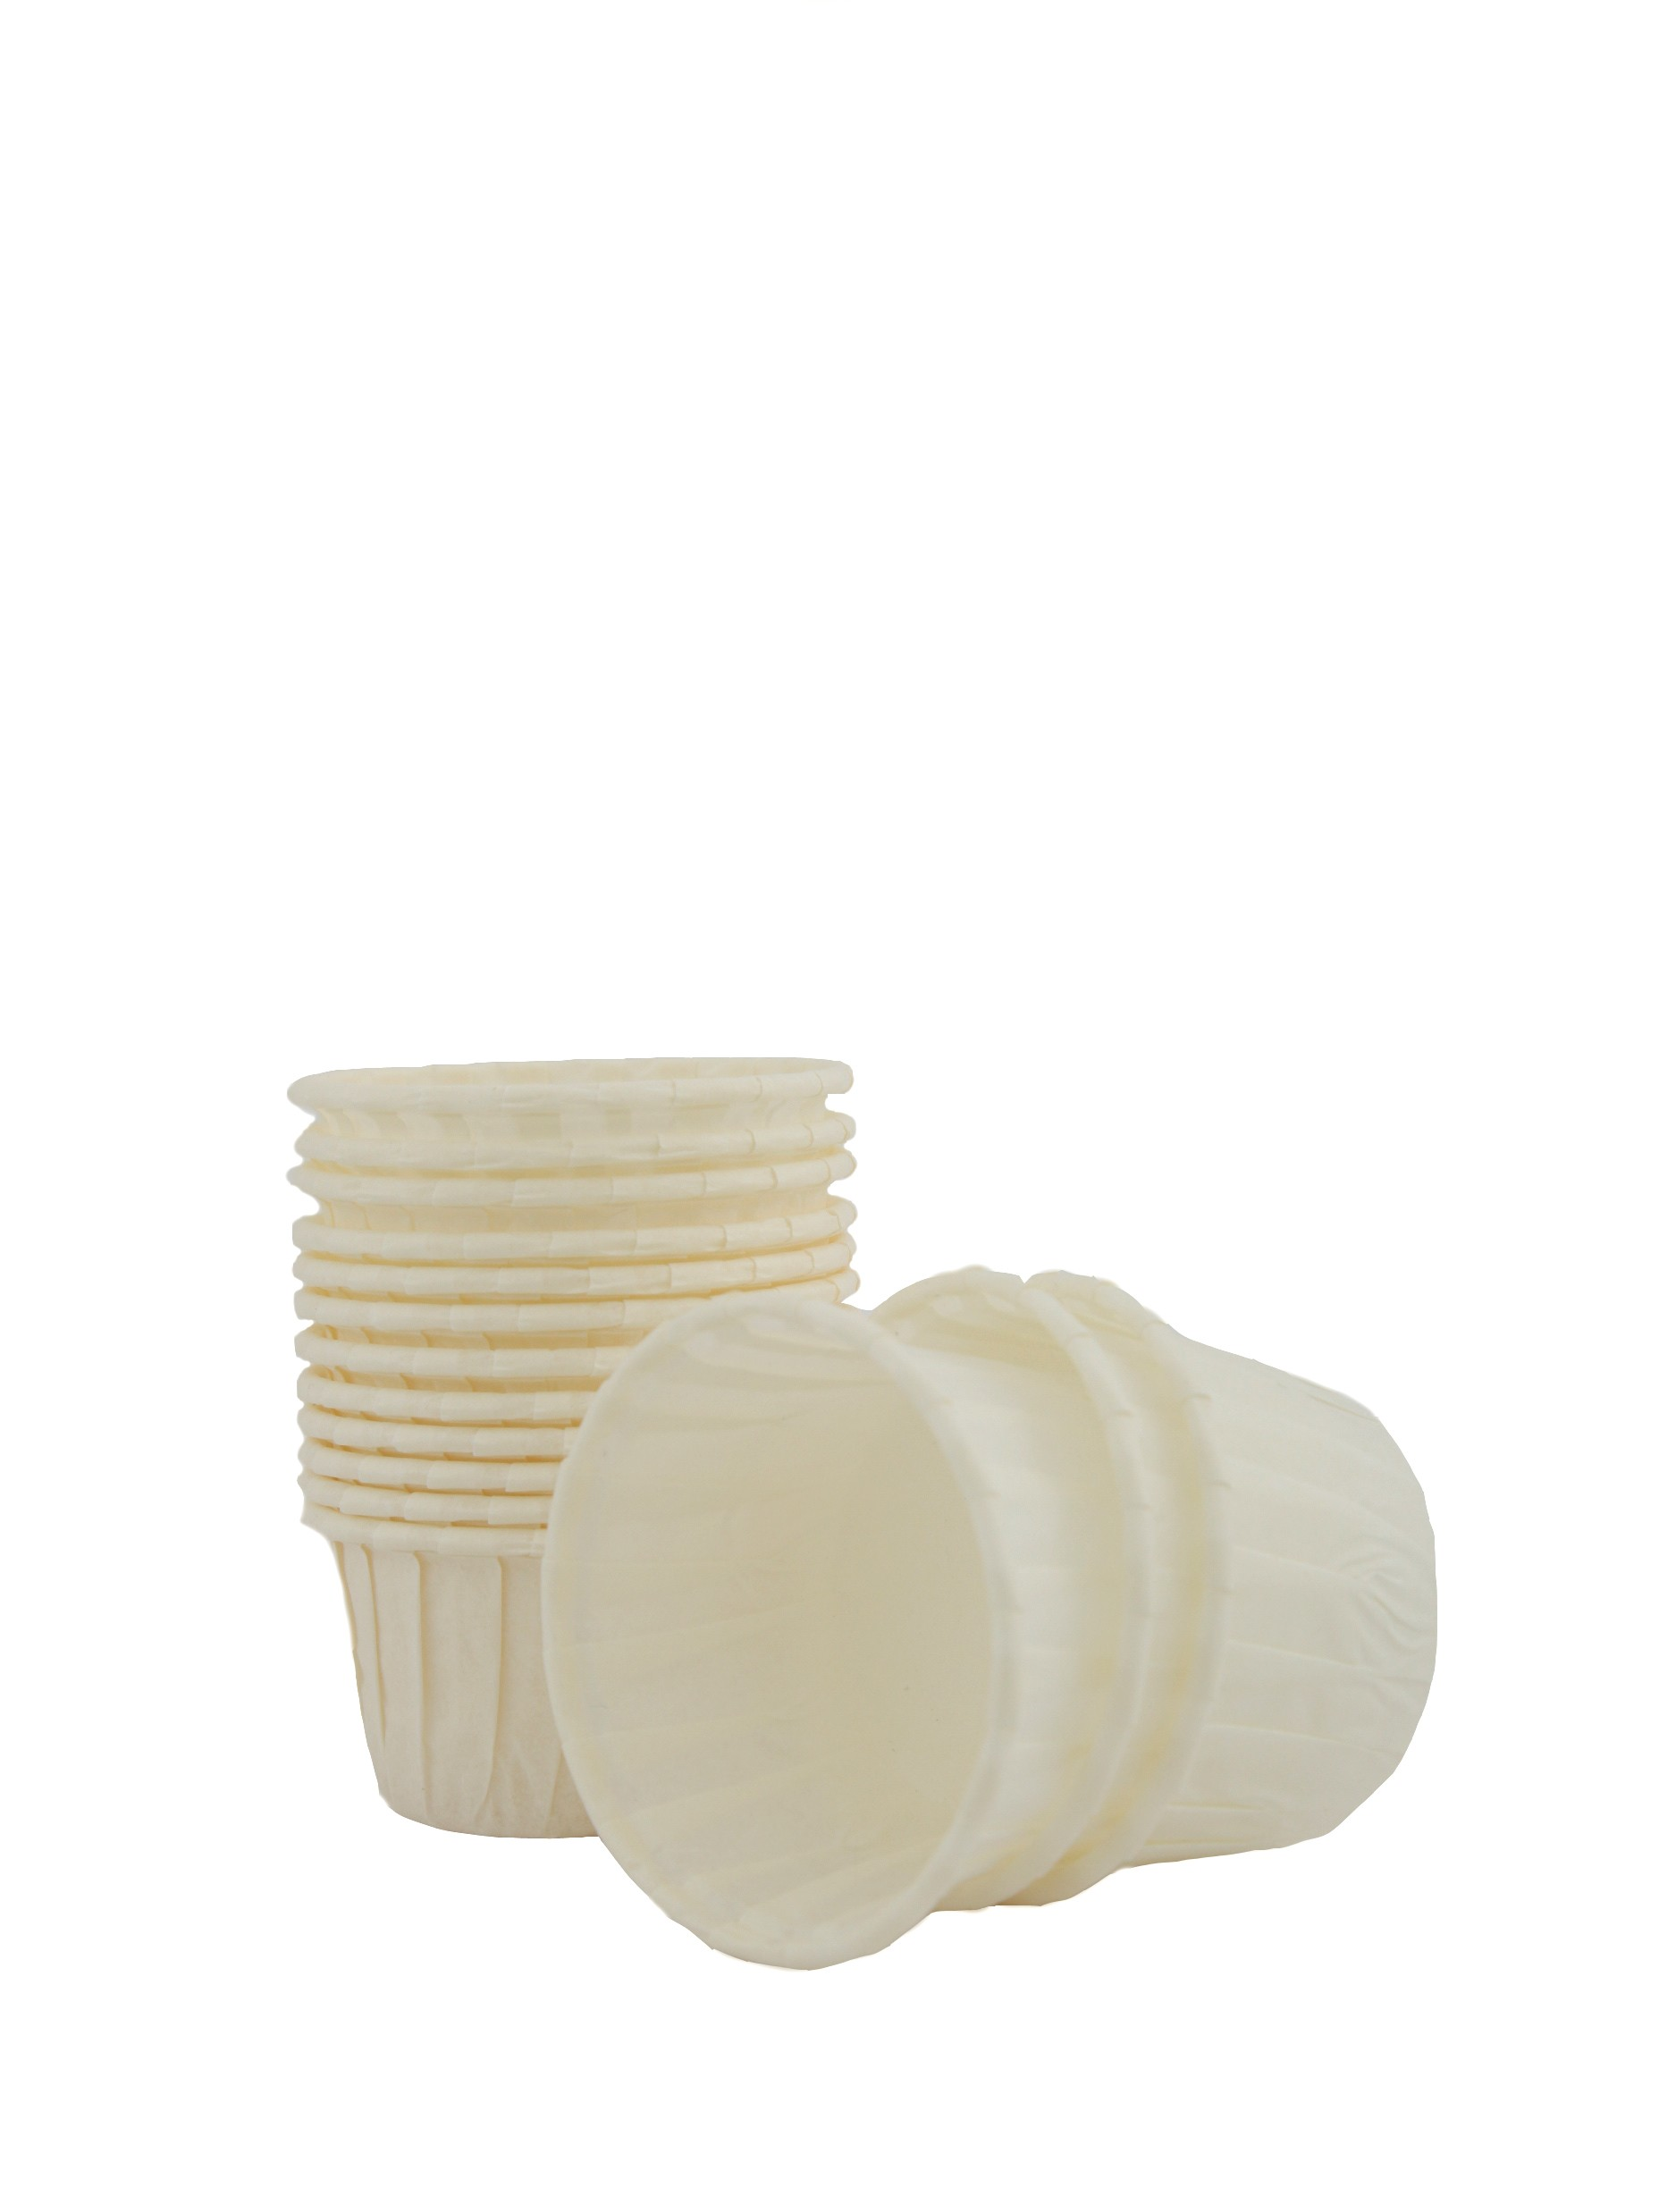 50 Small baking cups - TopCake